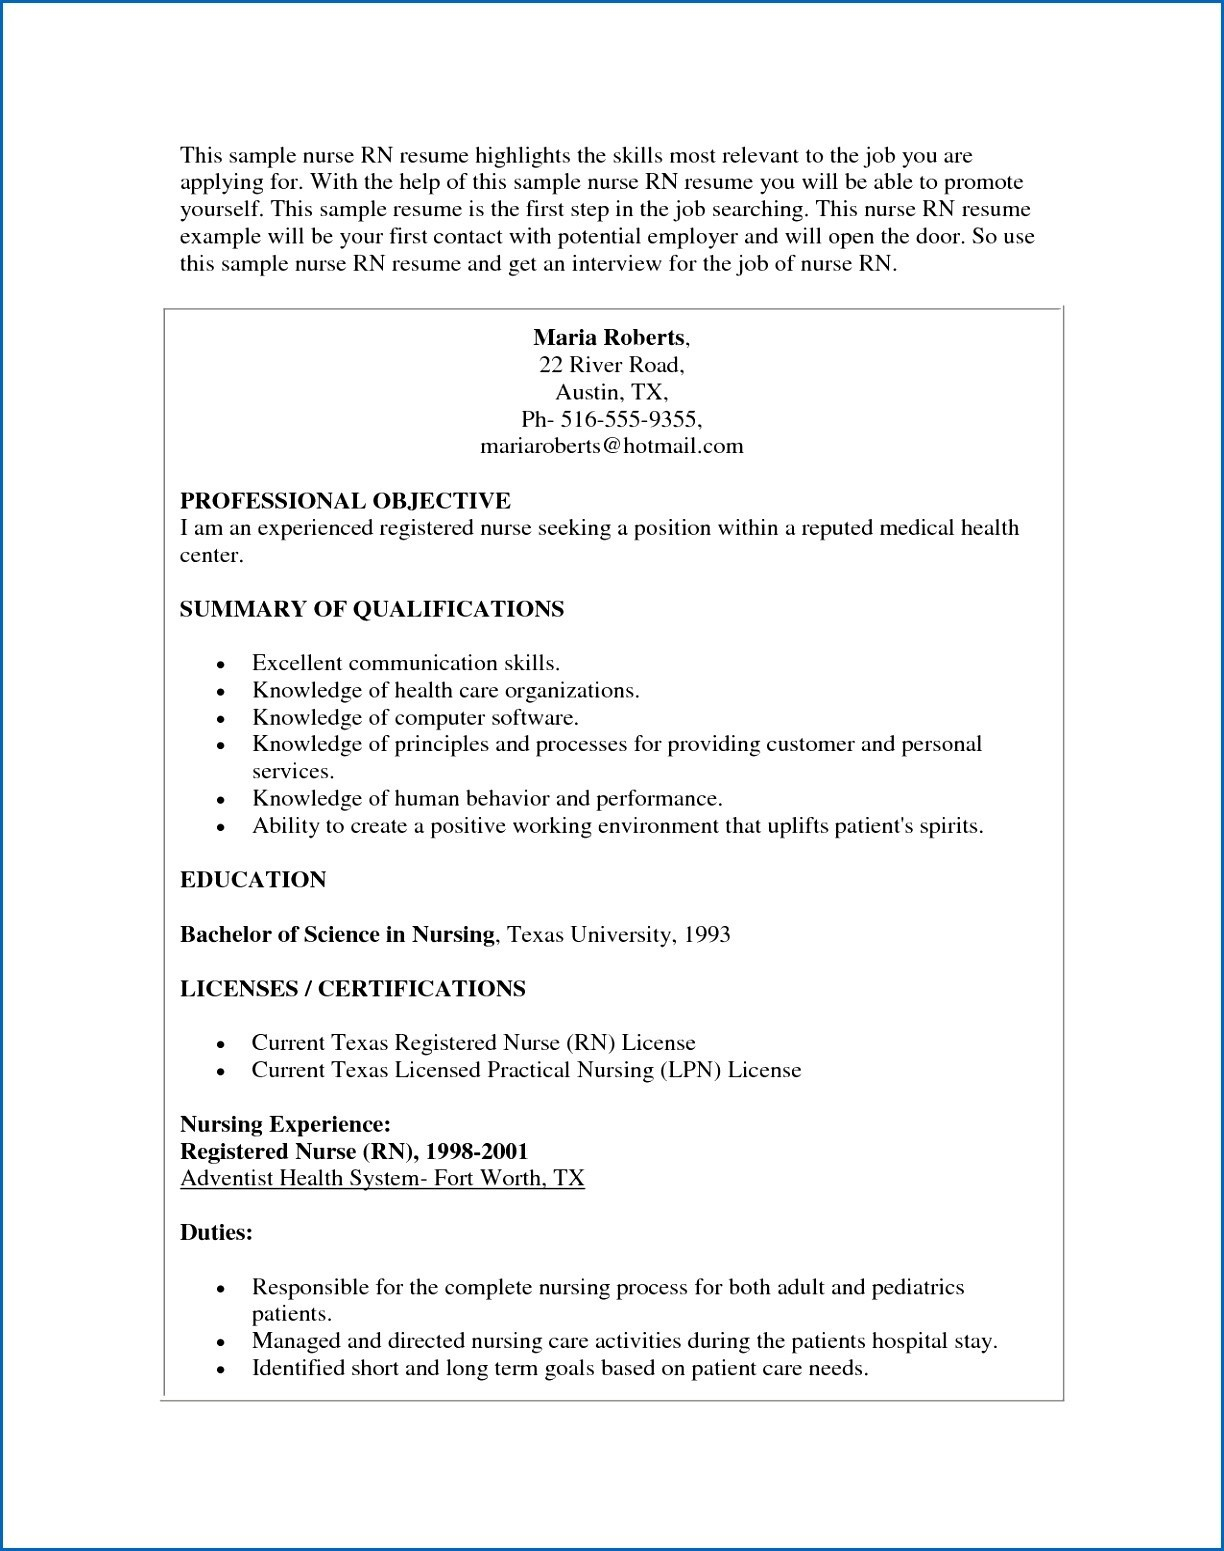 Nursing Resume Examples 2018 - Resume with Lovely Nursing Resume Lovely Rn Bsn Resume Awesome